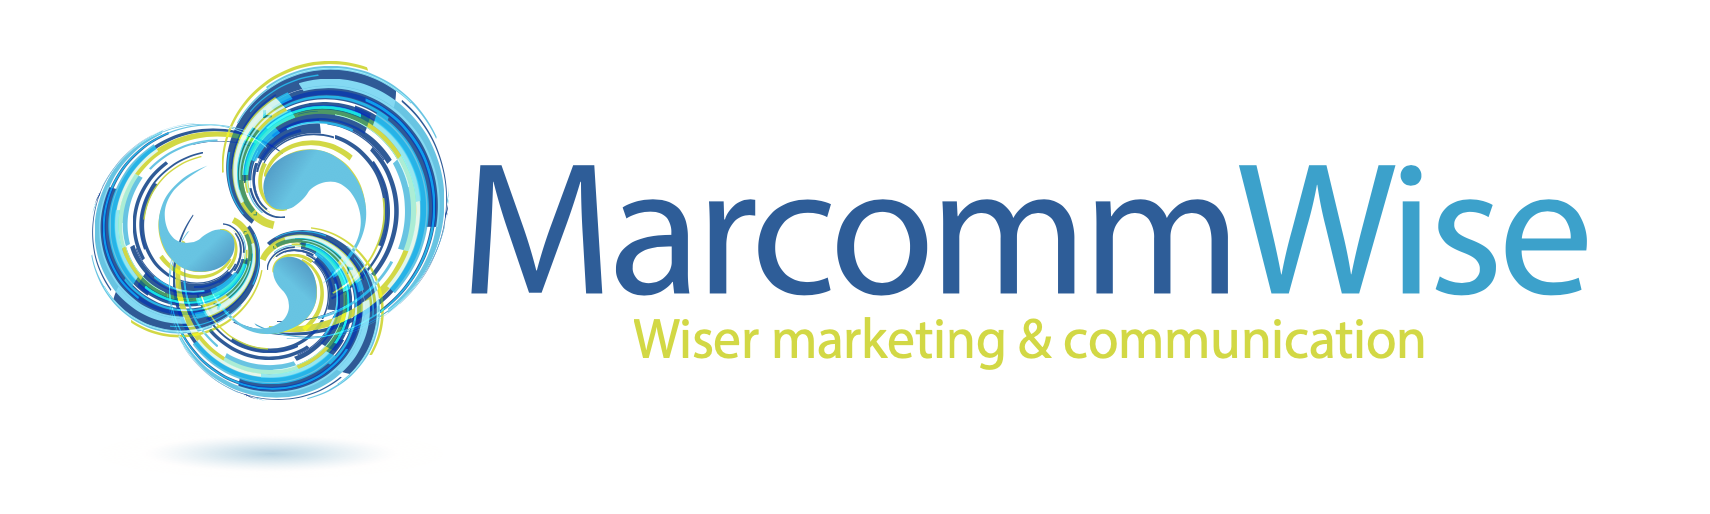 Marcommwise.com –